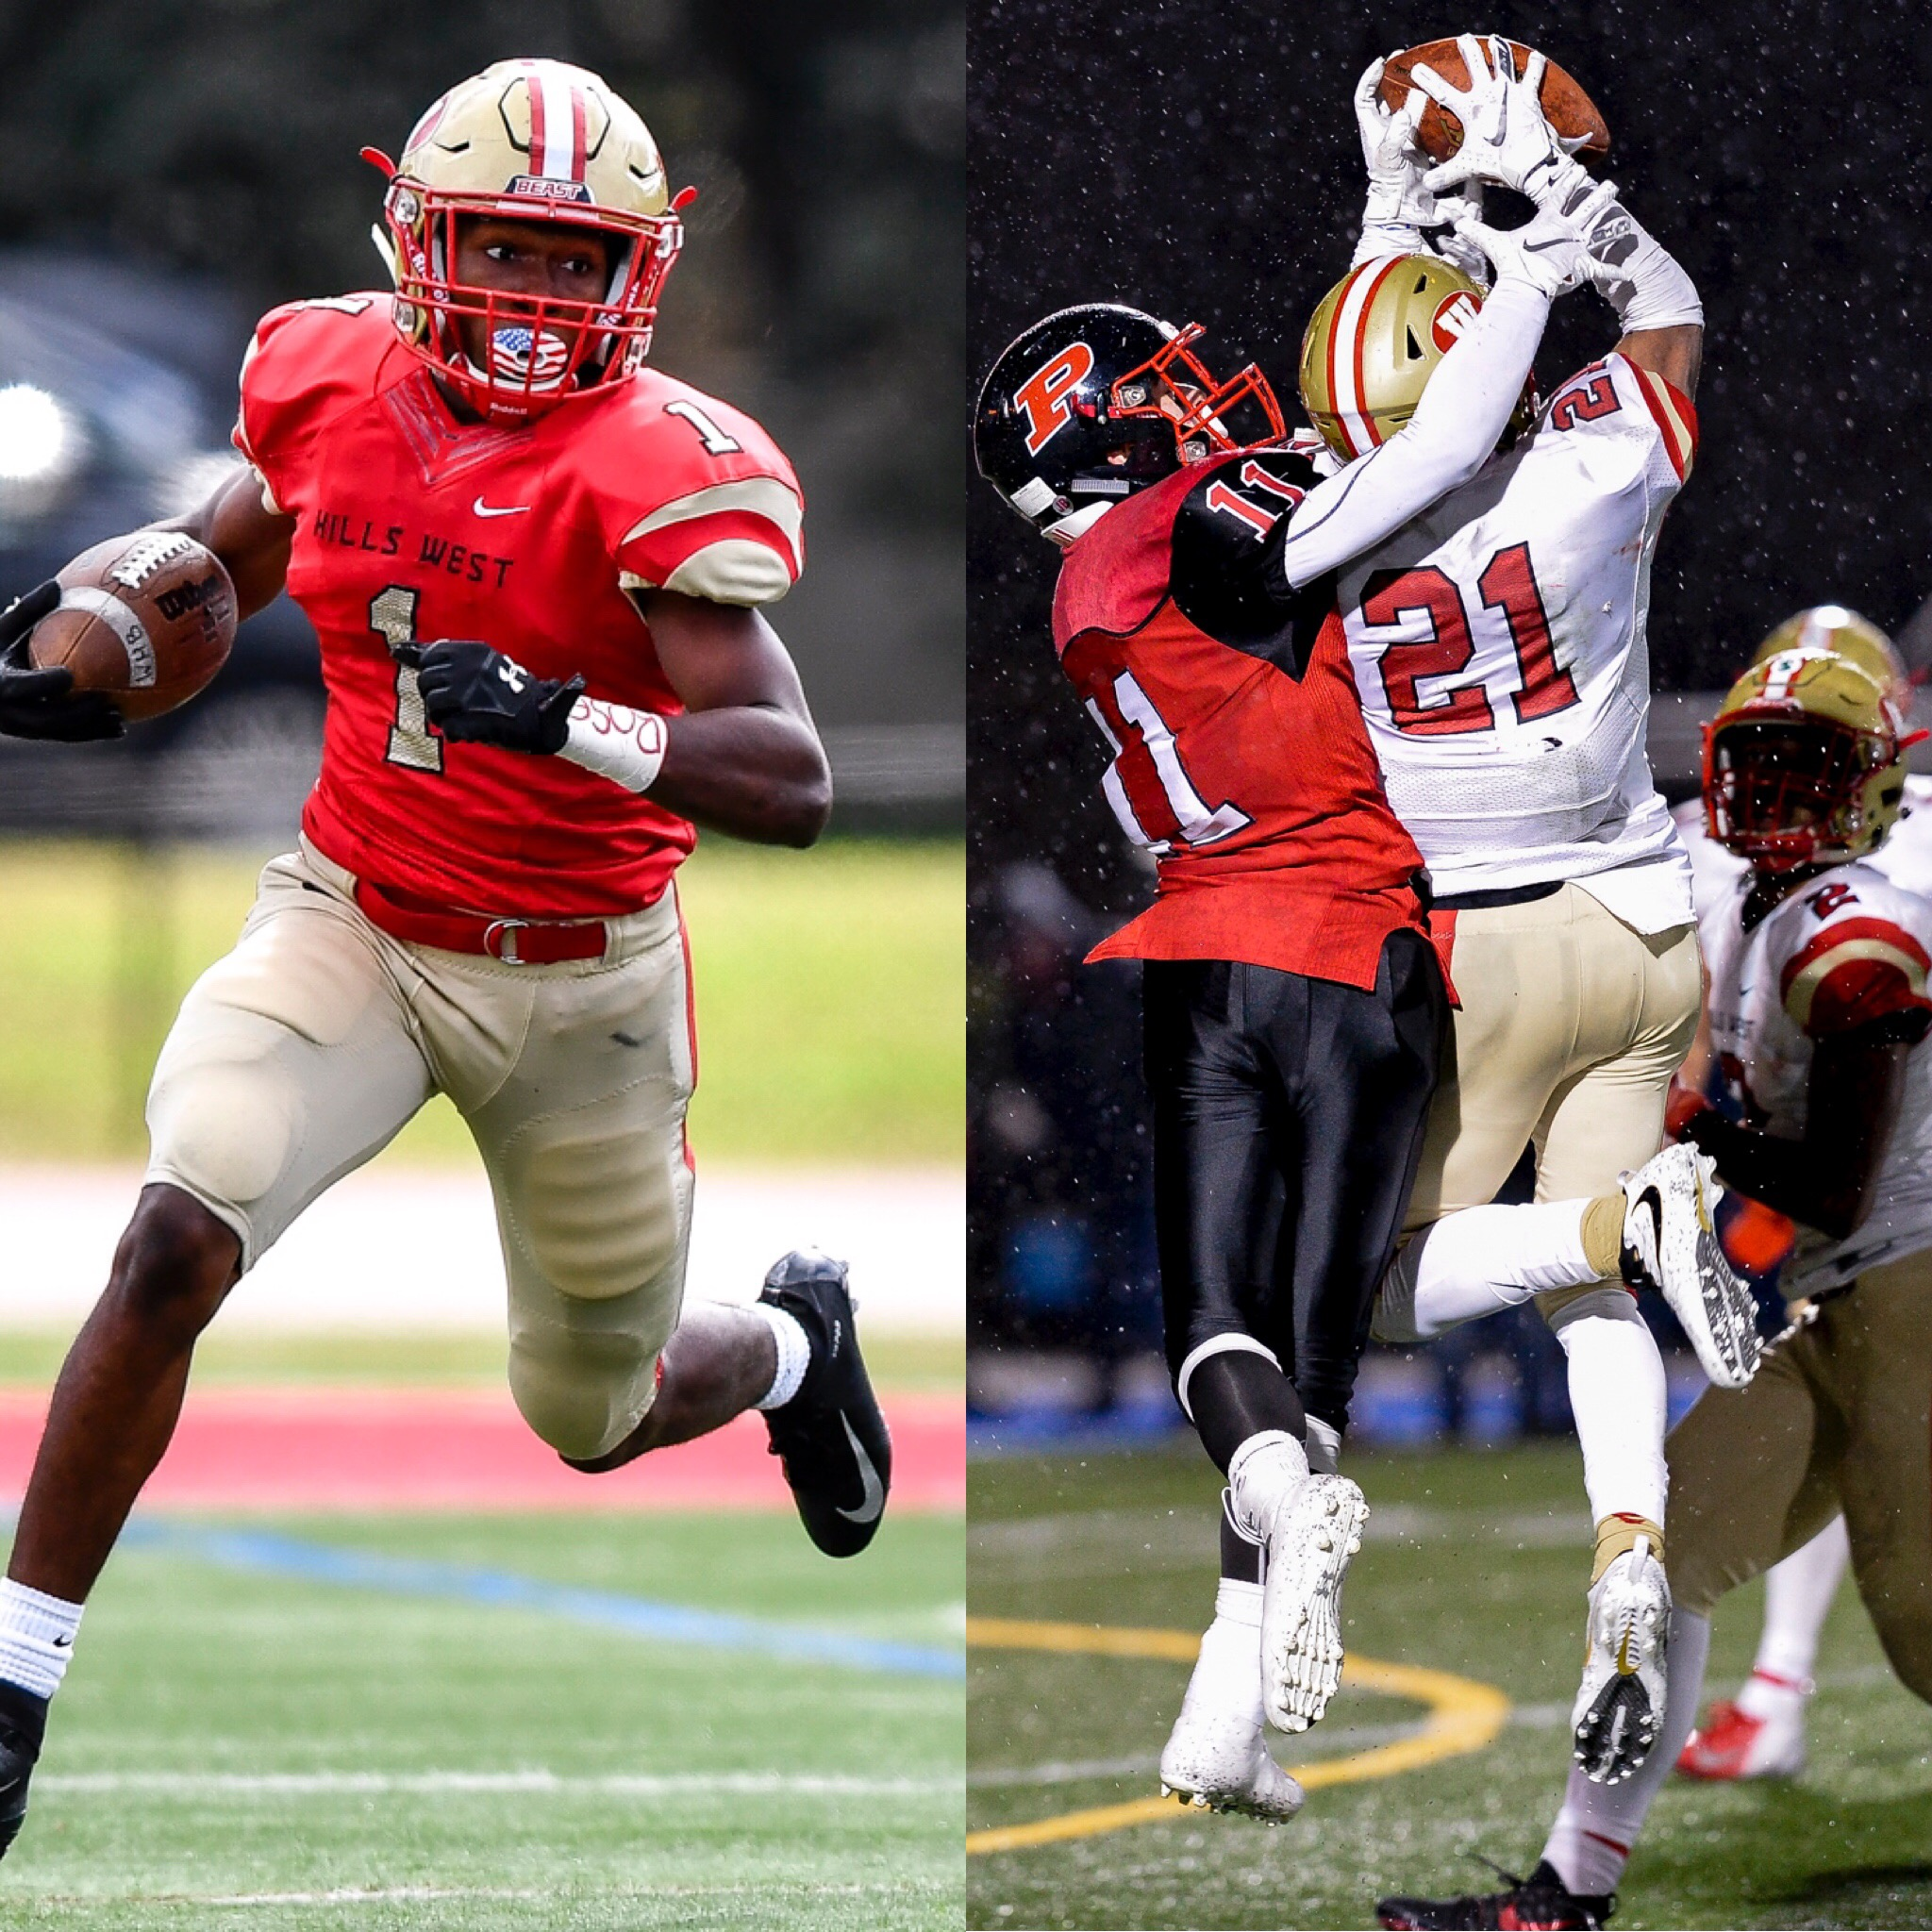 Hills West Football Players Named To NYSSWA All-State Football 1st Team